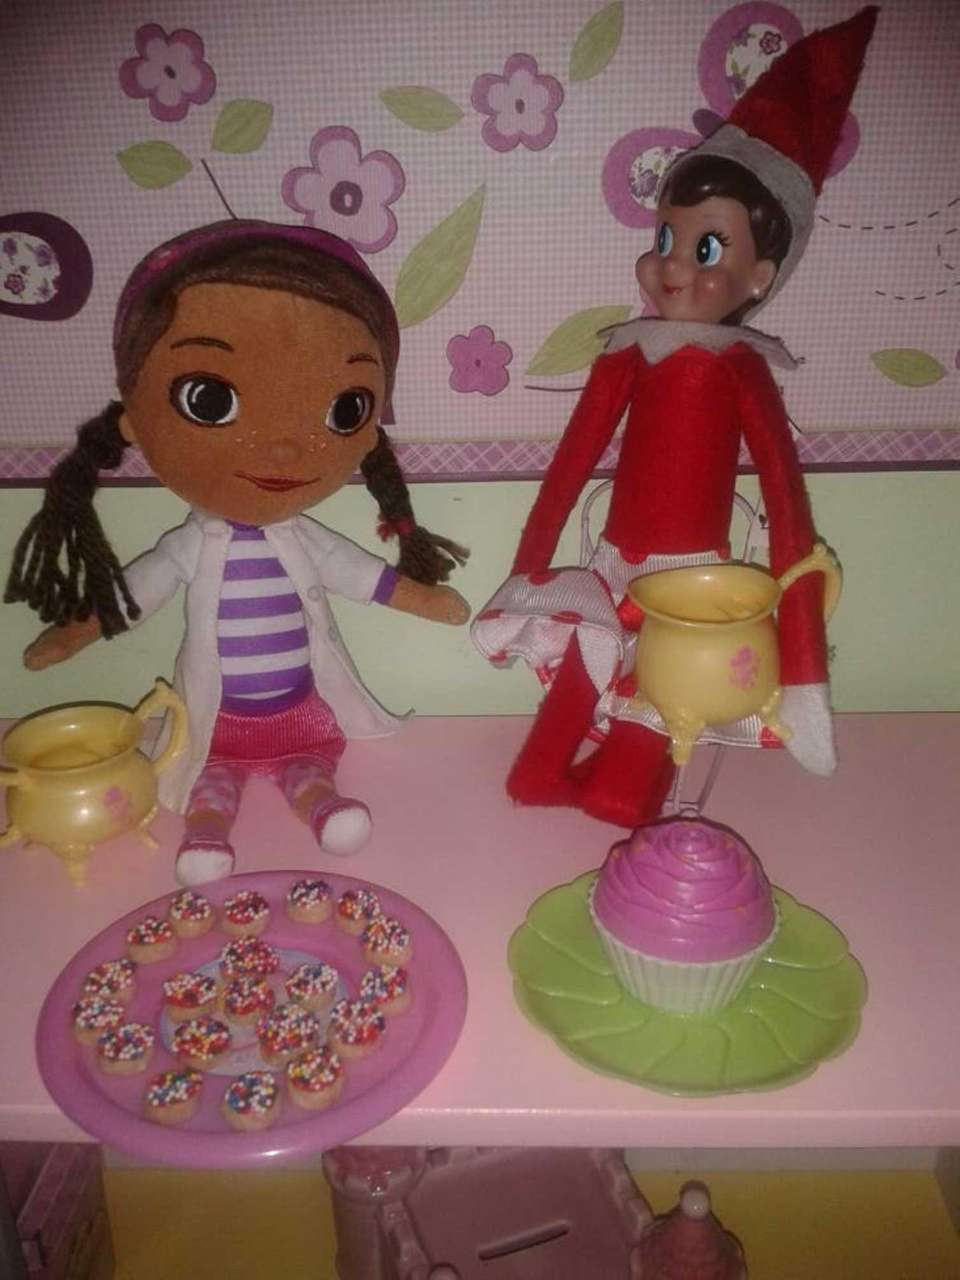 Made donuts (Cheerios) and enjoying a tea party